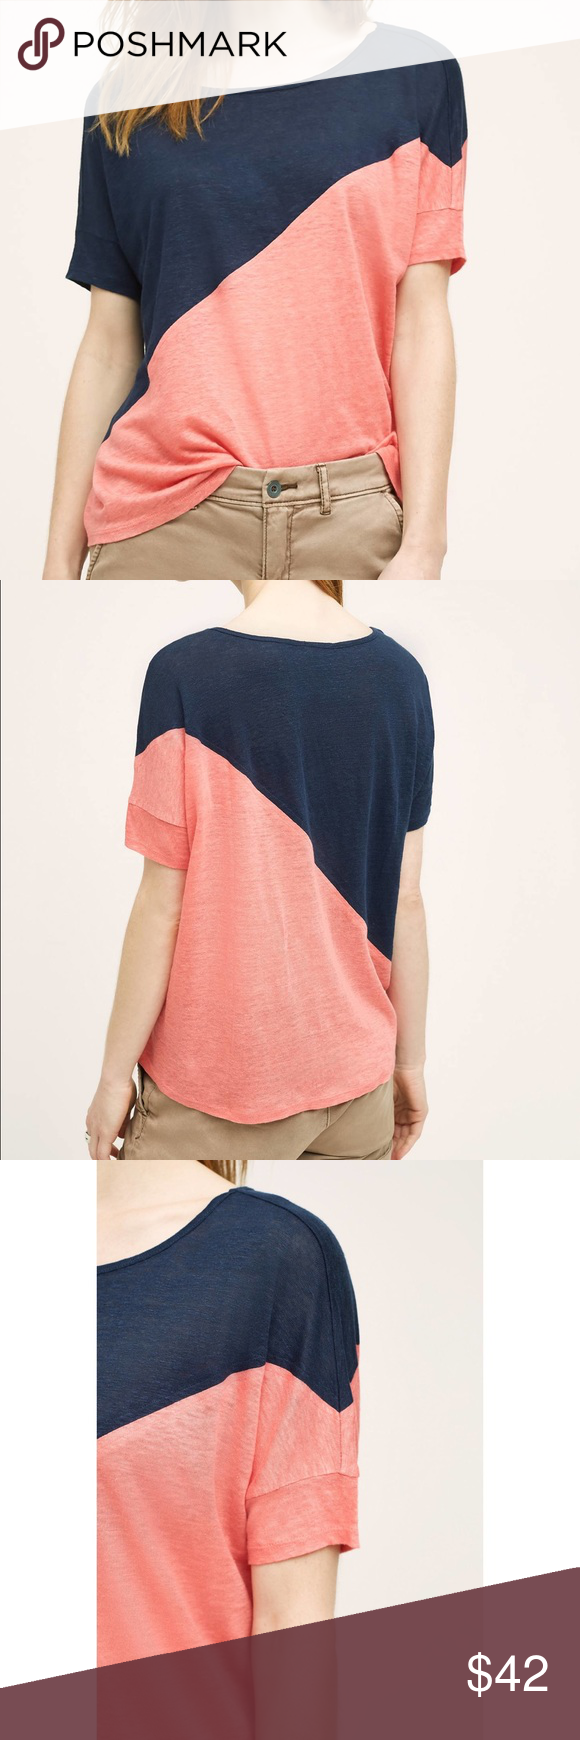 """NWT Anthropologie Bordeaux Colorgrade Tee S * Linen * Hand wash * Imported * Style No. 4112209027001 * Regular: 25""""L Comes from a smoke and pet free home. Item is new without tags and has never been worn.  My prices are firm. No trades or holds. No transactions off of poshmark. Anthropologie Tops Blouses"""